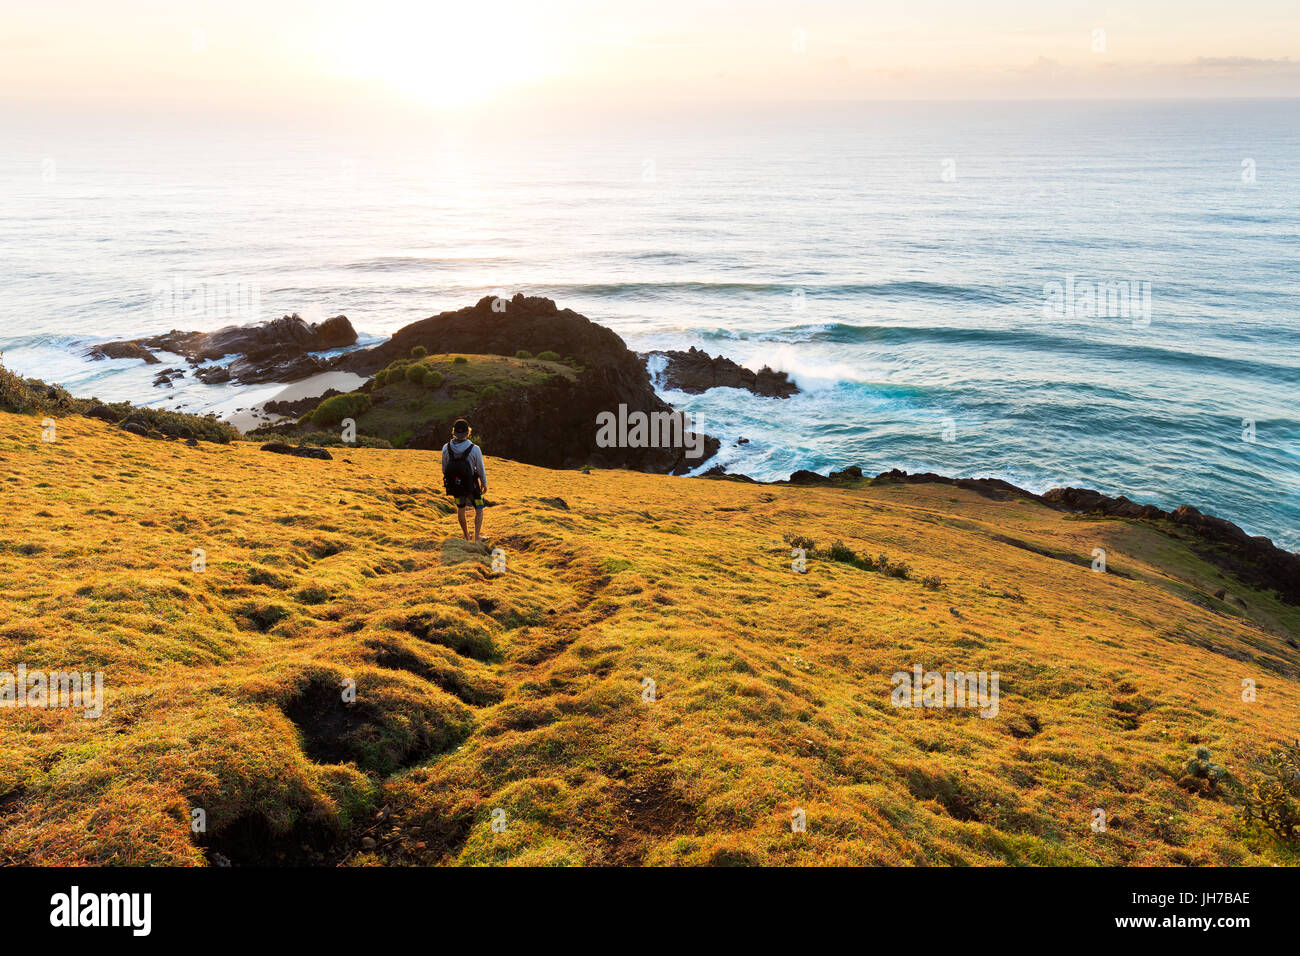 A person on a grassy headland watches the sunrise over the sea and a beautiful coastline in Australia. - Stock Image